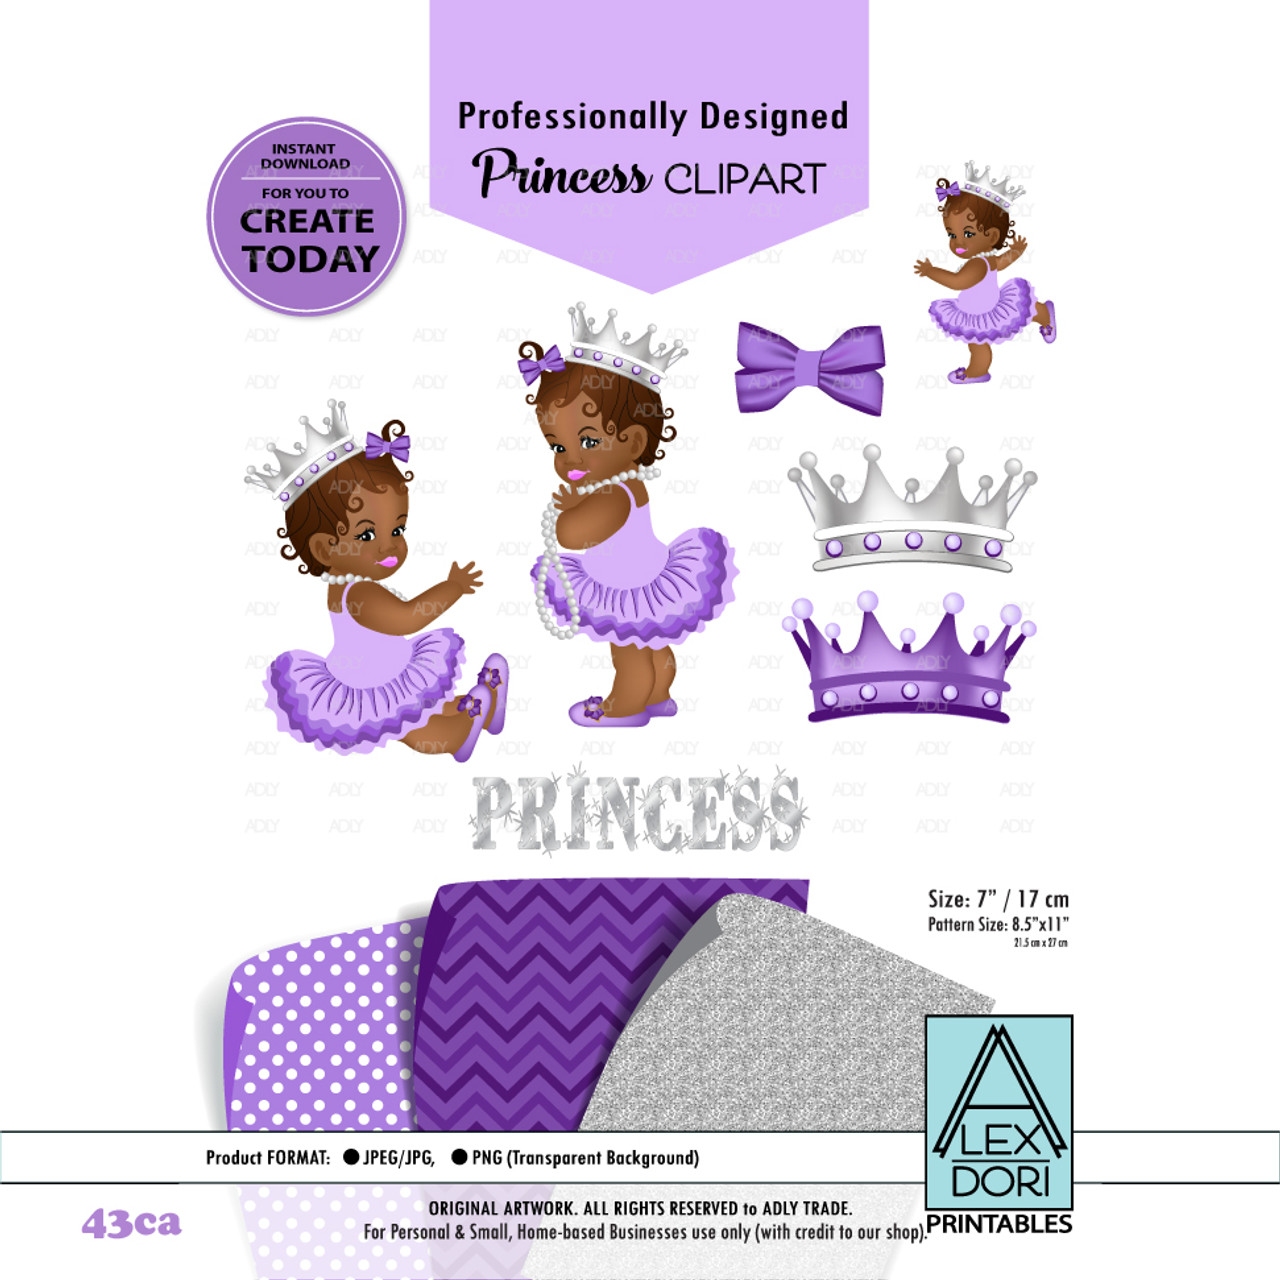 princess african american baby digital clipart purple and gray baby girl clipart crown clipart baby shower adly invitations and digital party designs [ 971 x 971 Pixel ]